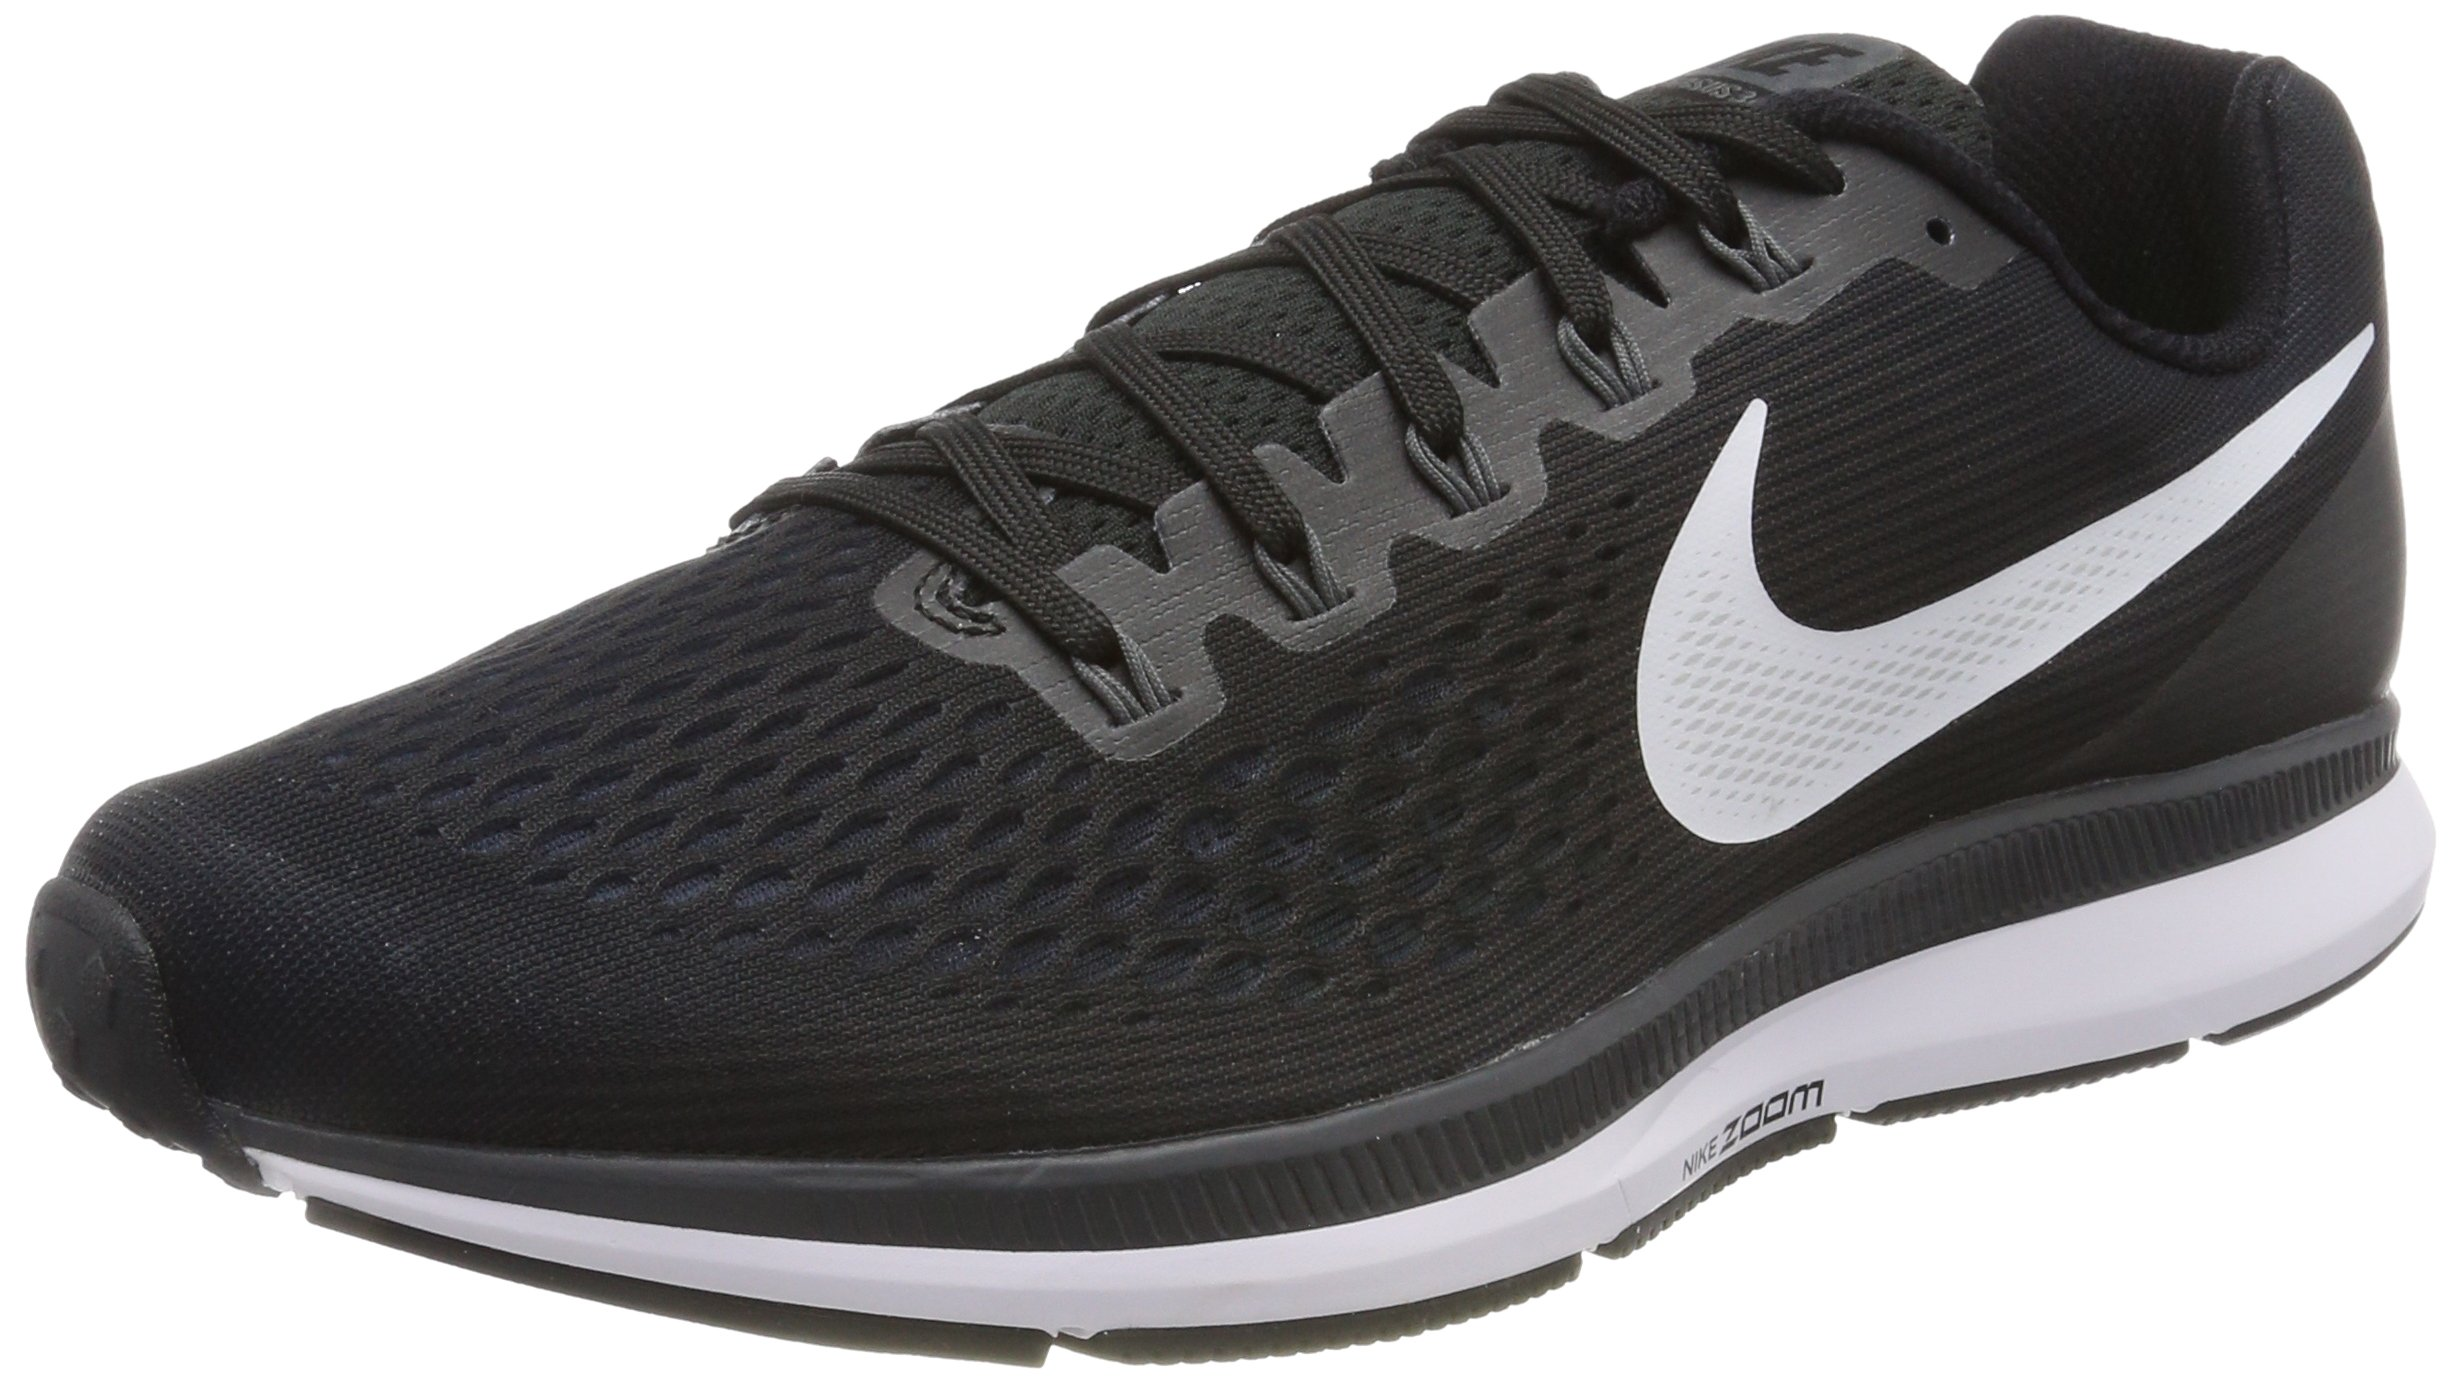 NIKE Mens Air Zoom Pegasus 34 Running Shoe Black/White/Dark Grey/Anthracite 12.5 D(M) US by NIKE